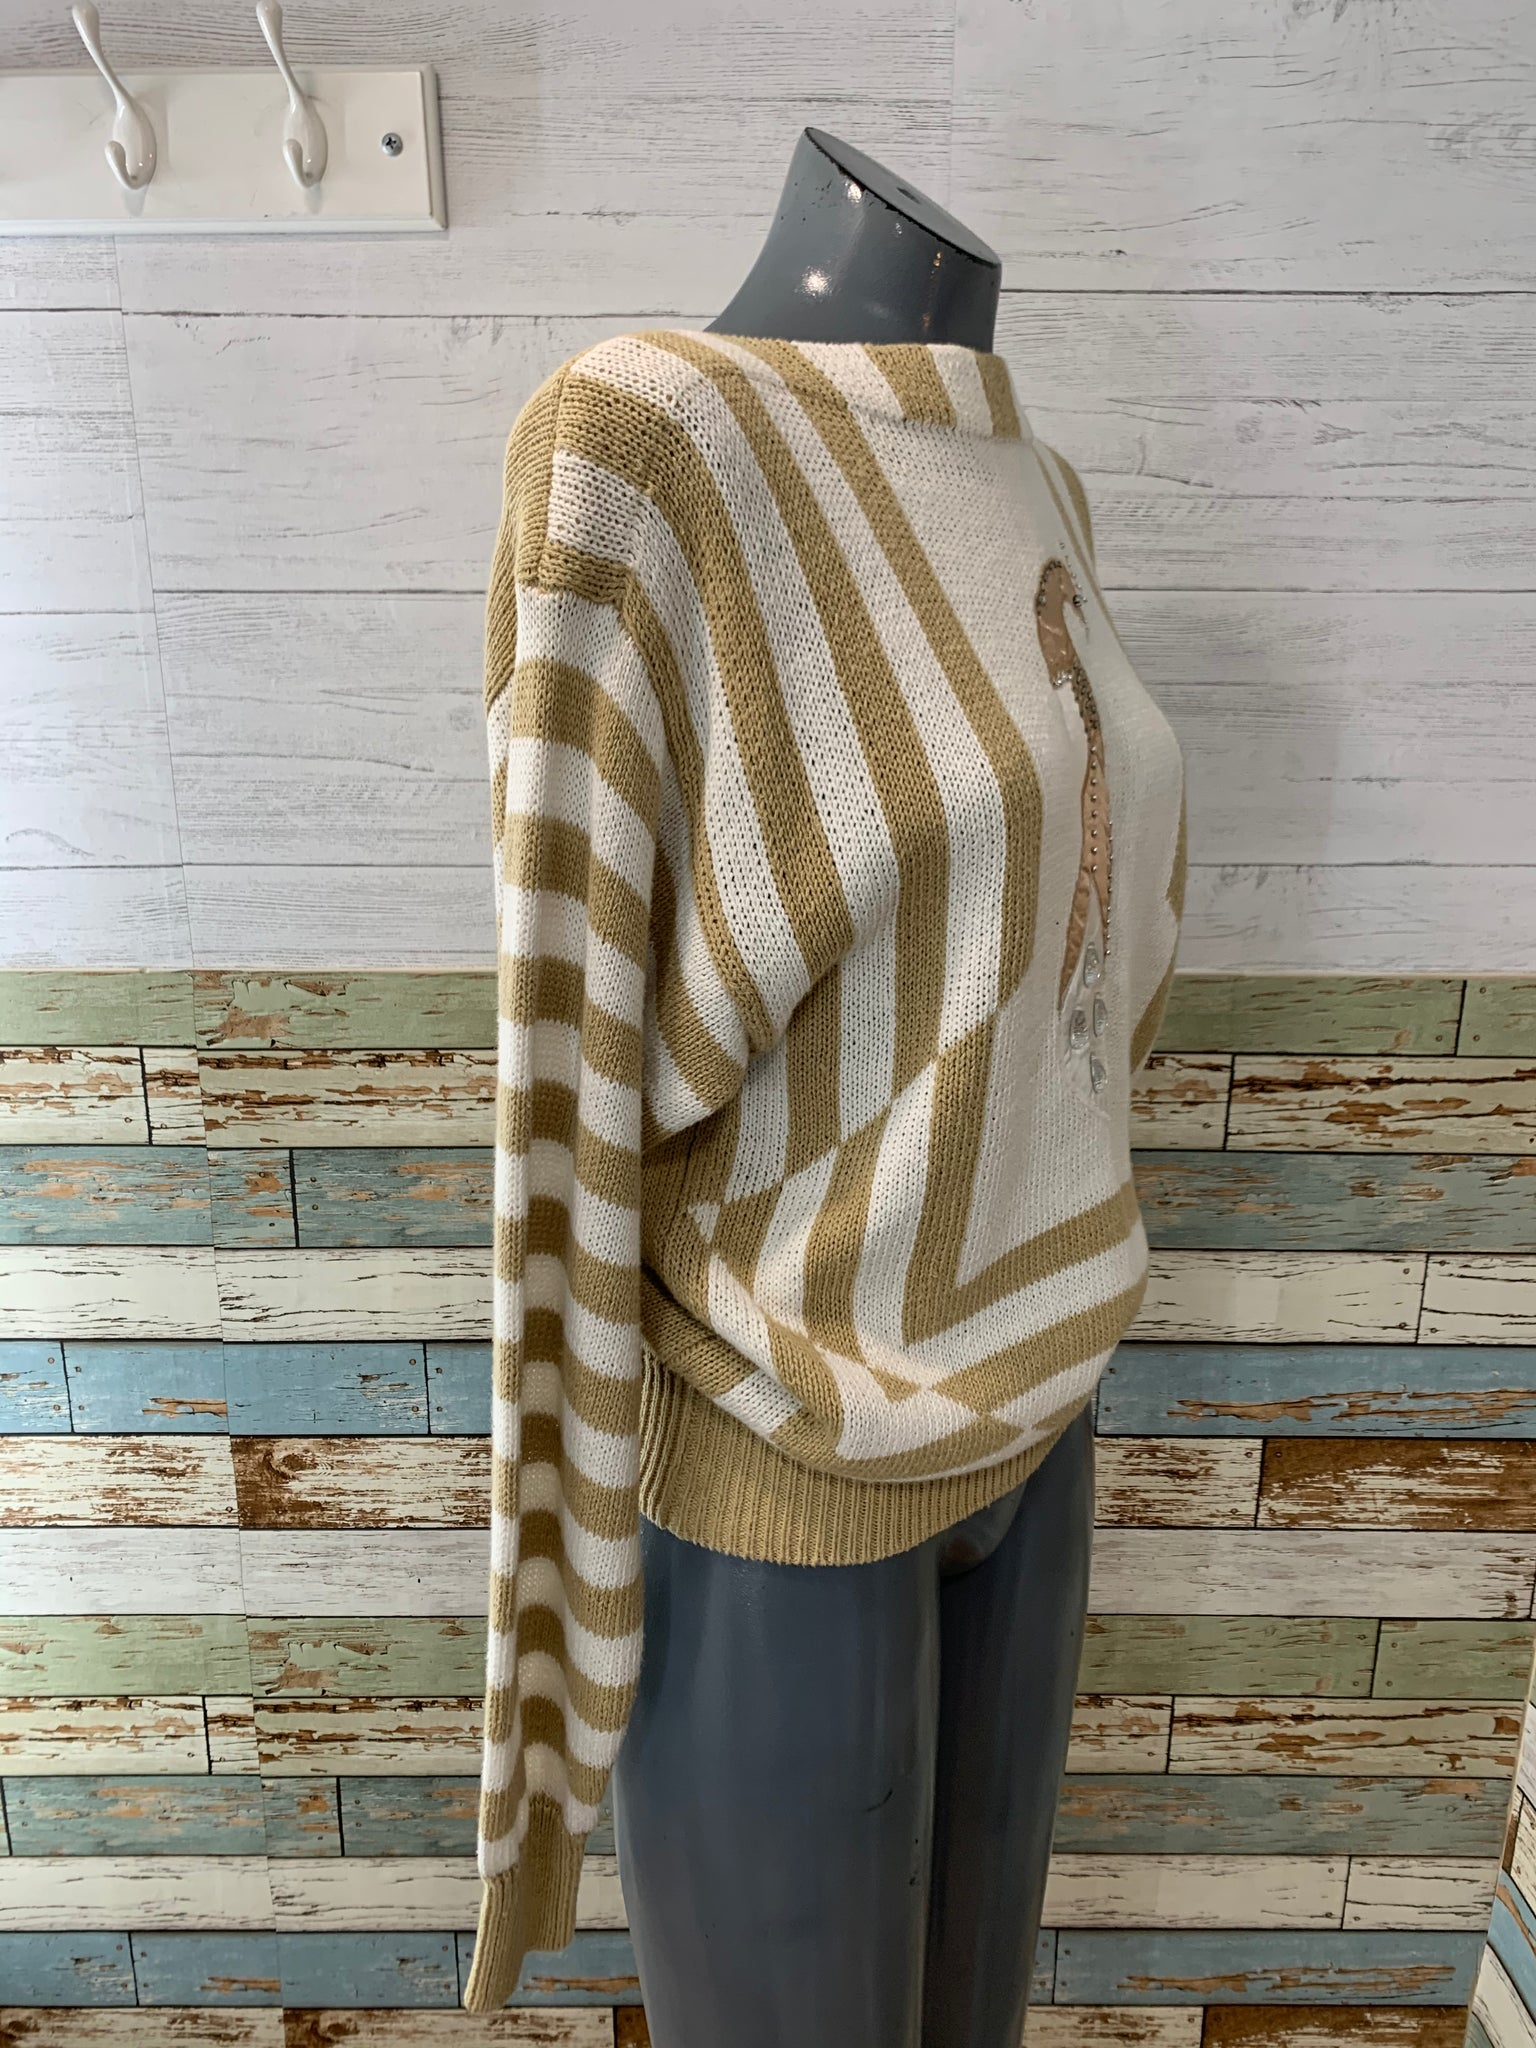 90s Bird Print & Stripes Cotton Sweater By Tian Collections